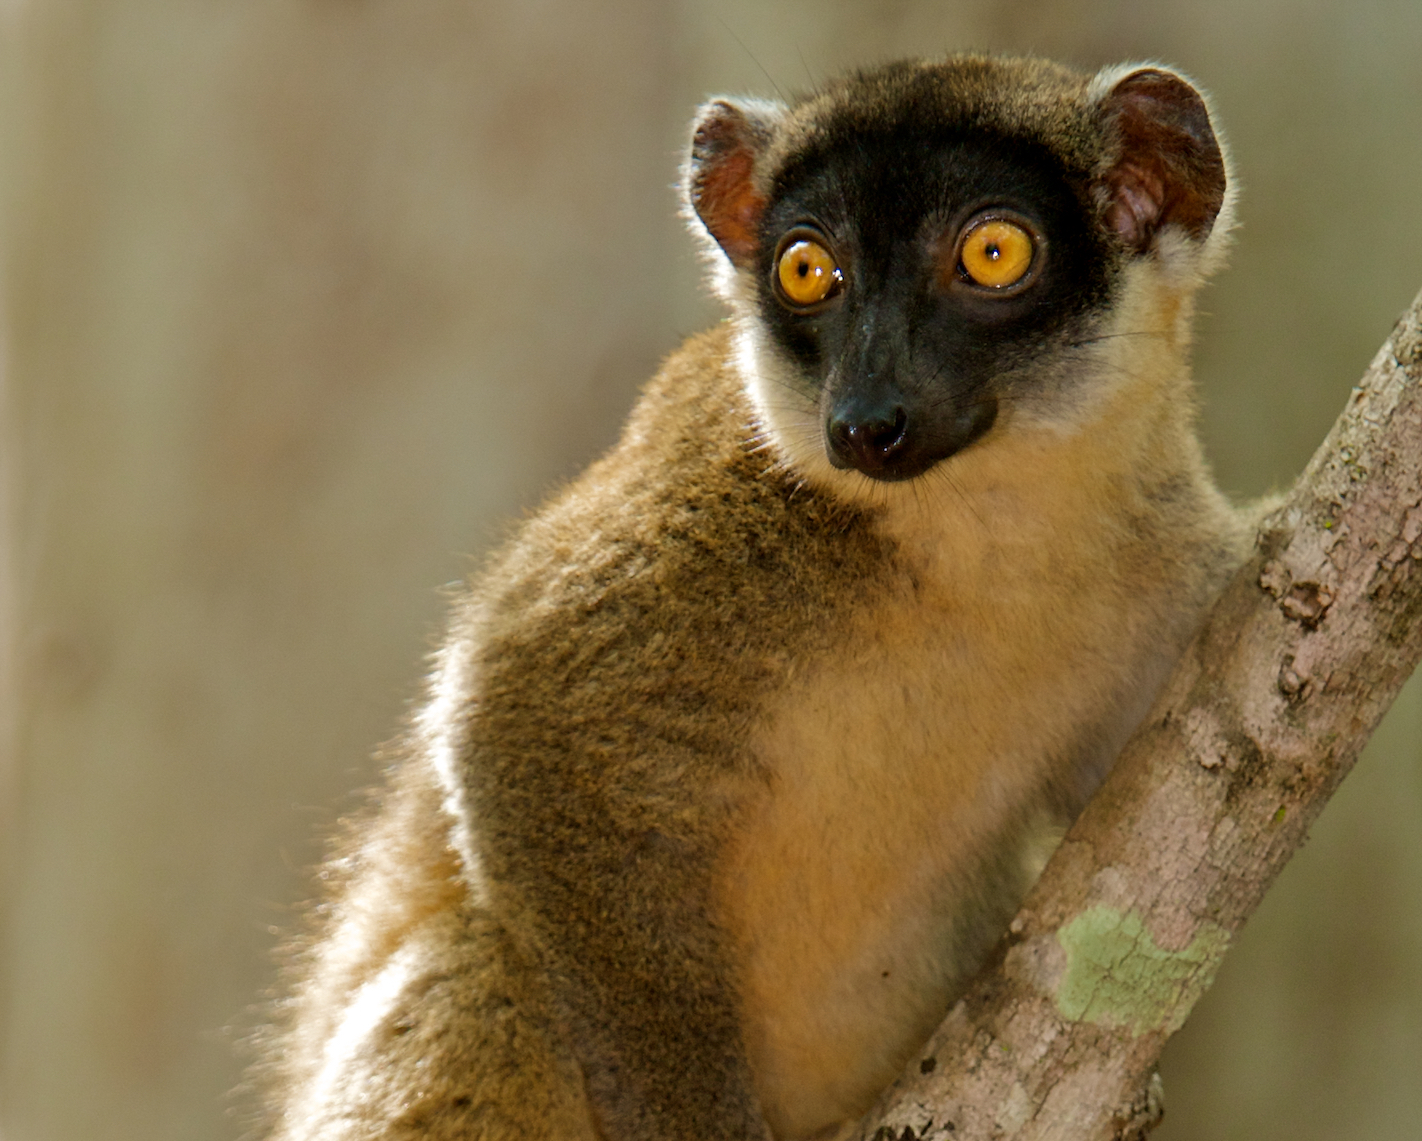 Lemurs can only be found in the forests of Madagascar – a large island off the east coast of Africa. These forests are becoming increasingly fragmented, placing almost all species of lemur at risk of extinction, which is further exacerbated by habitat loss on the island as well.